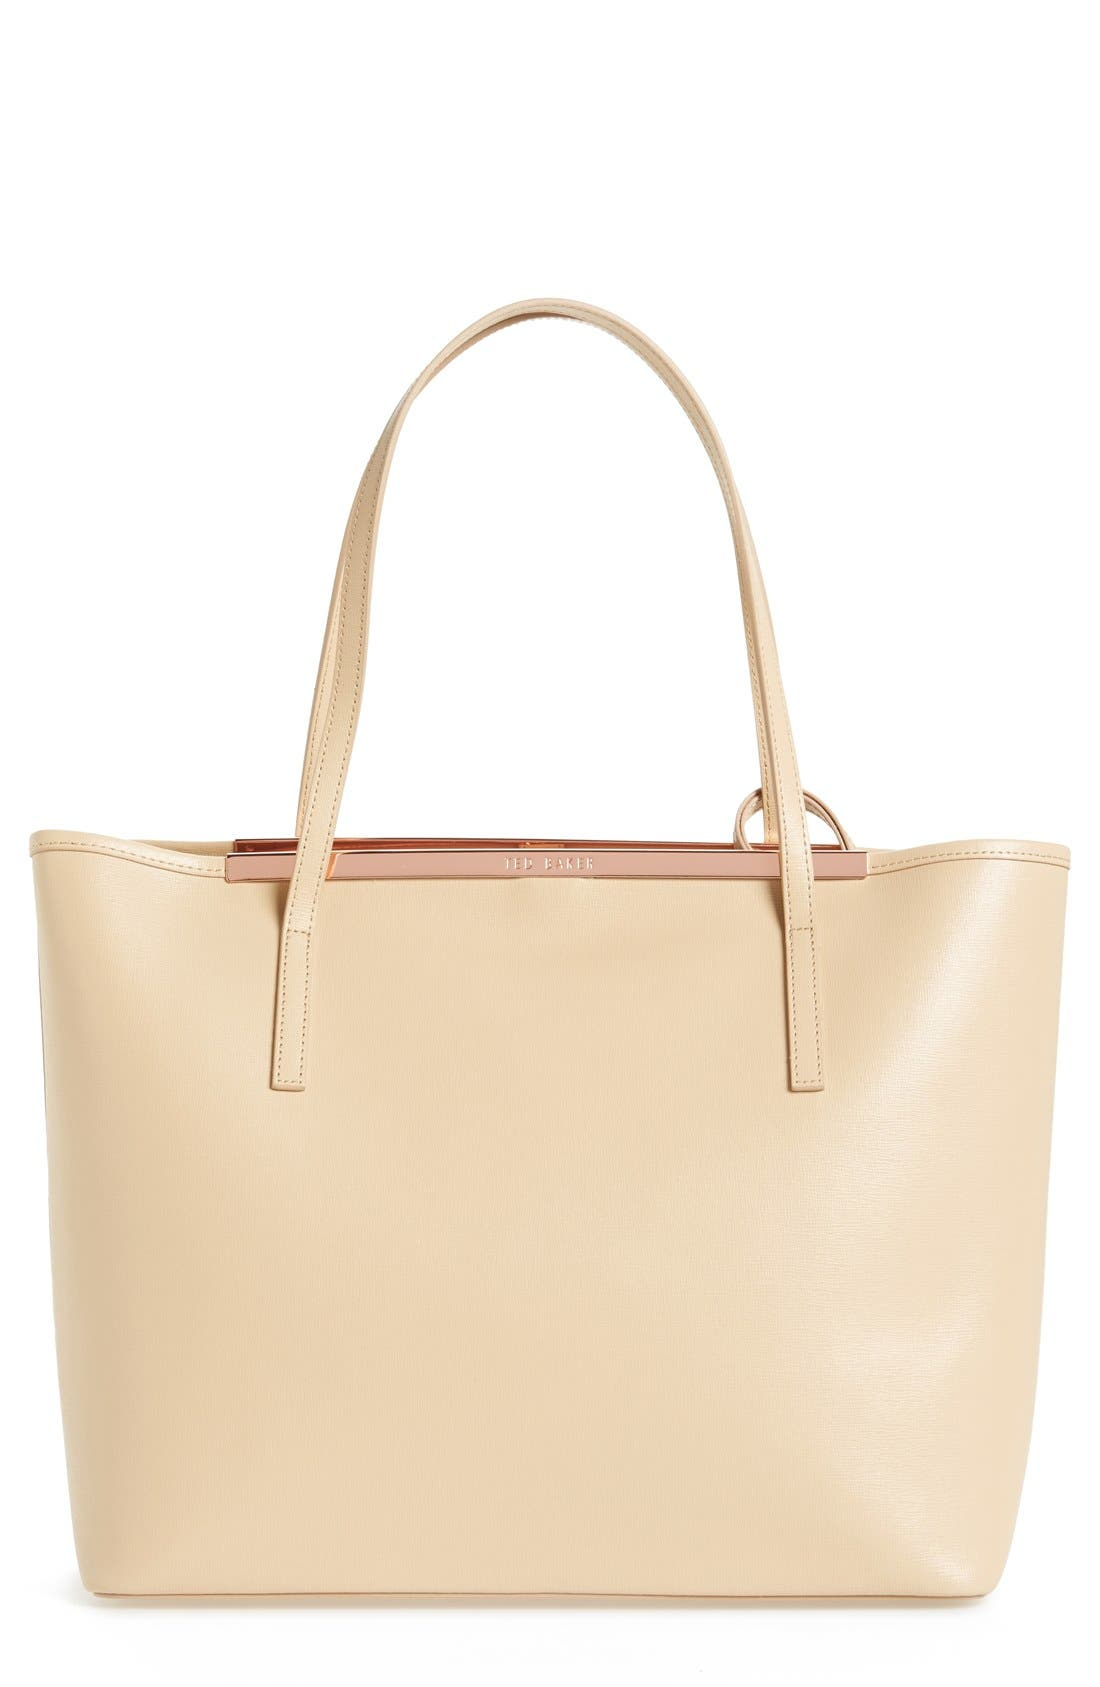 Main Image - Ted Baker London 'Isbell' Leather Tote